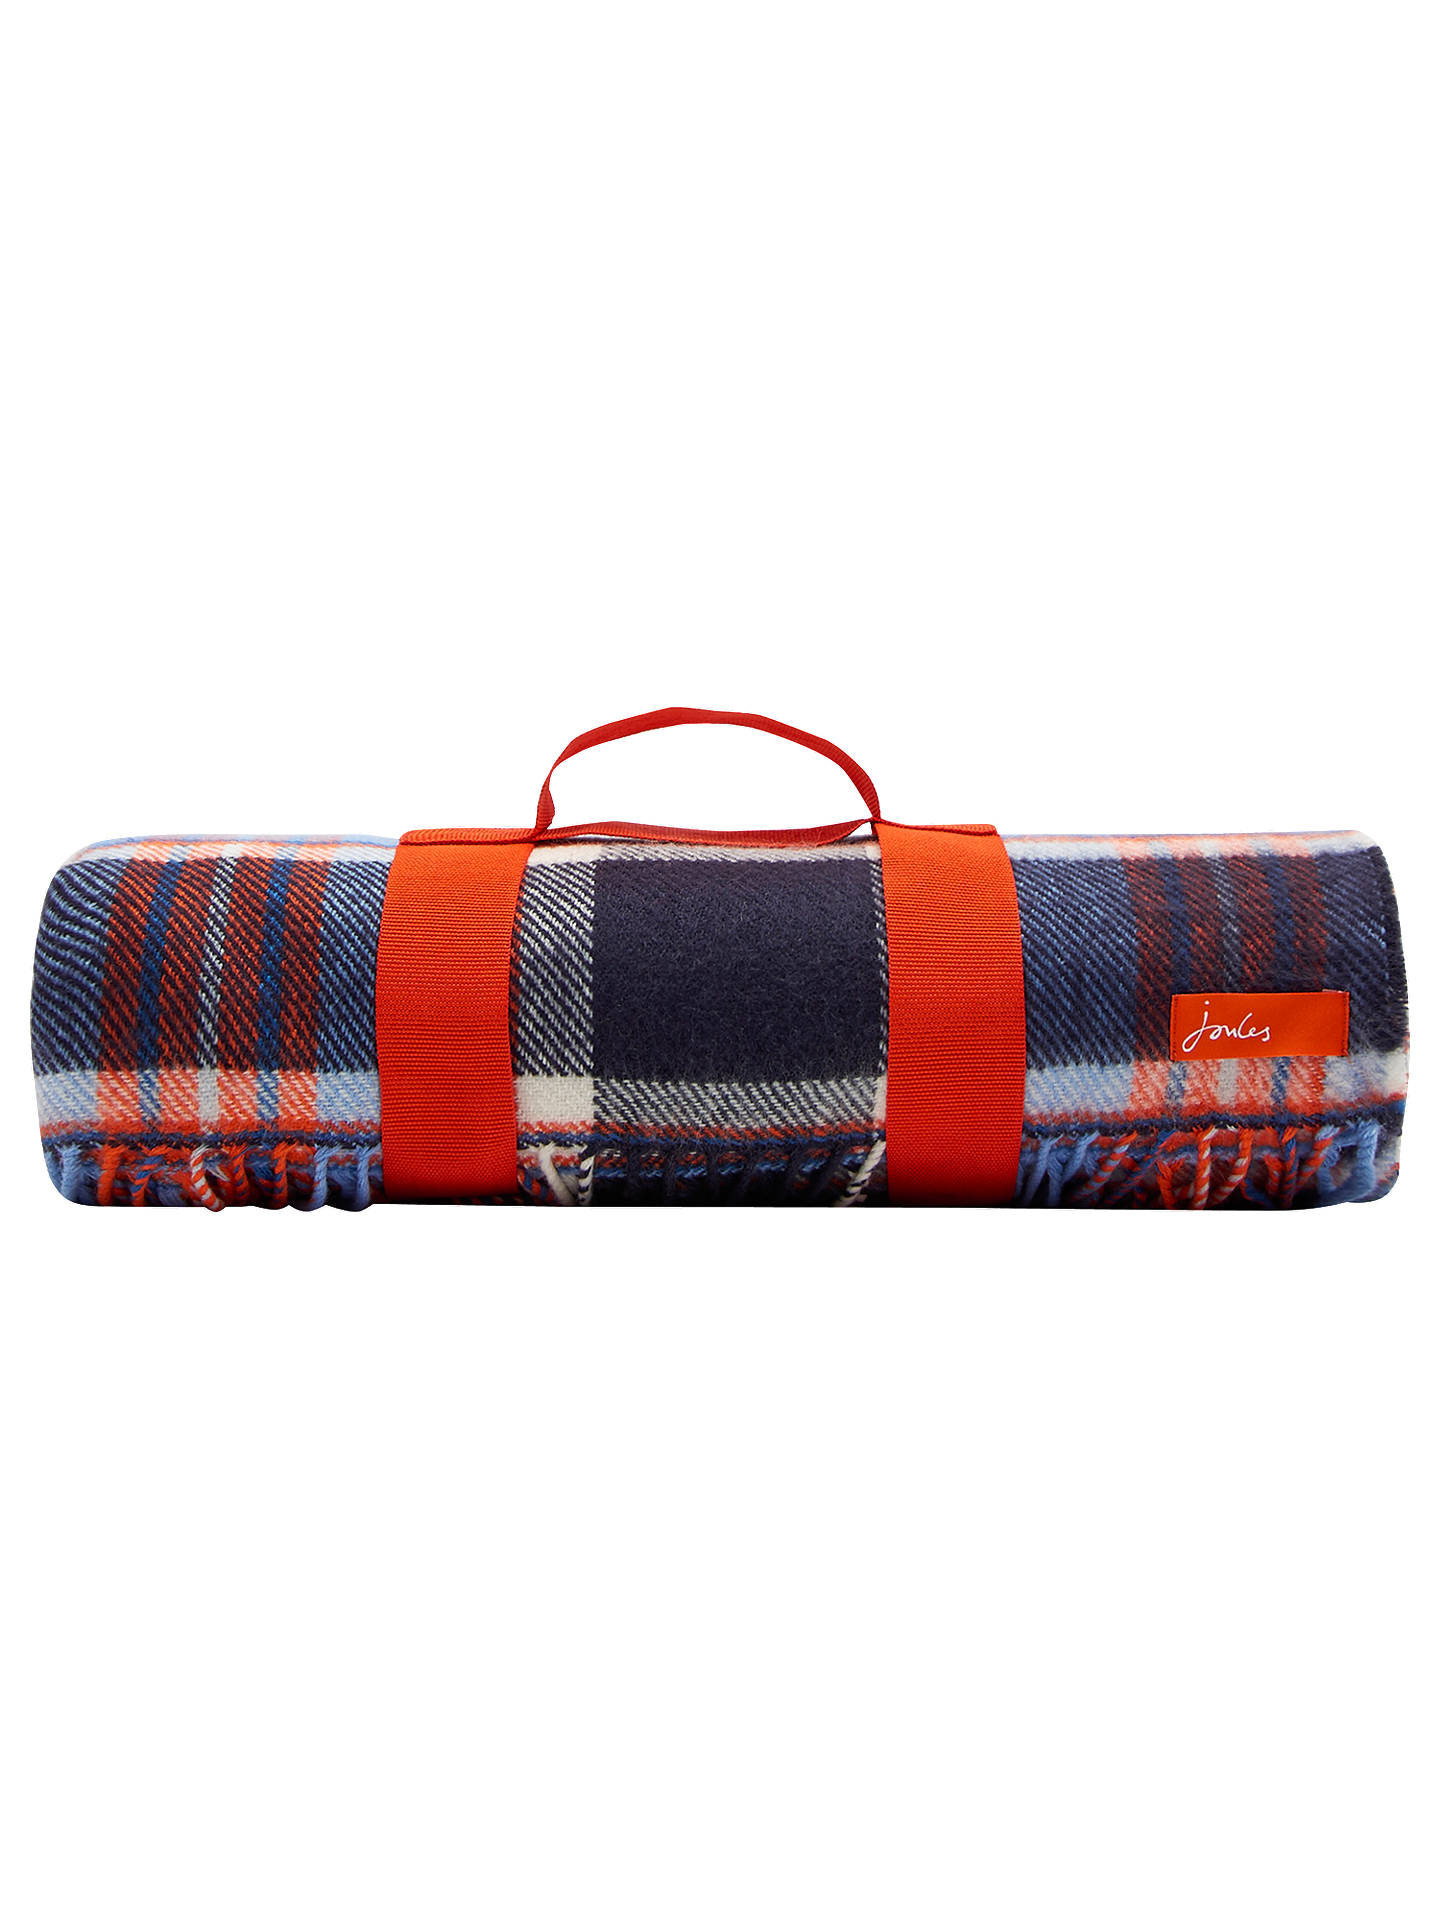 Joules Woven Check Picnic Rug Online At Johnlewis Com